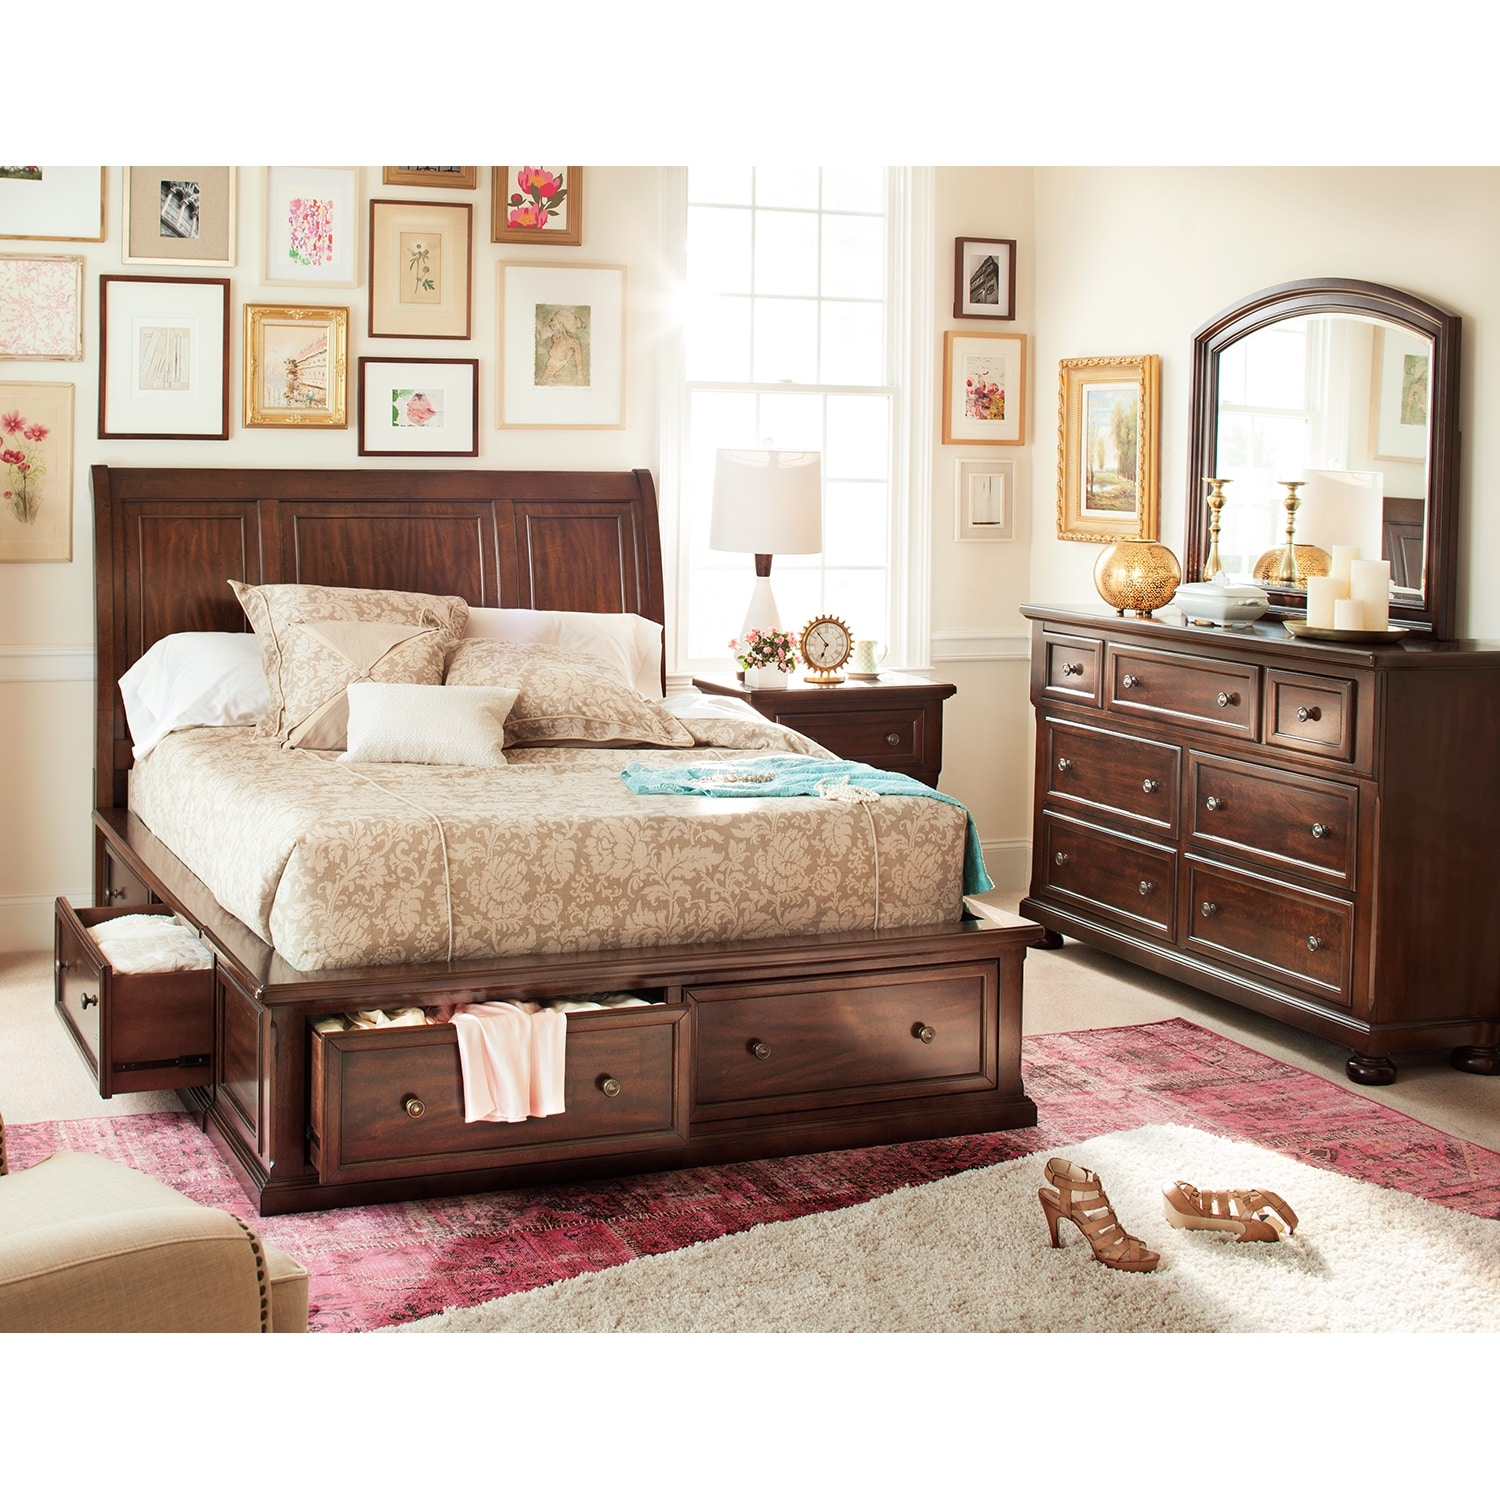 Bedroom Furniture - Hanover 5-Piece Storage Bedroom Set with Dresser and Mirror